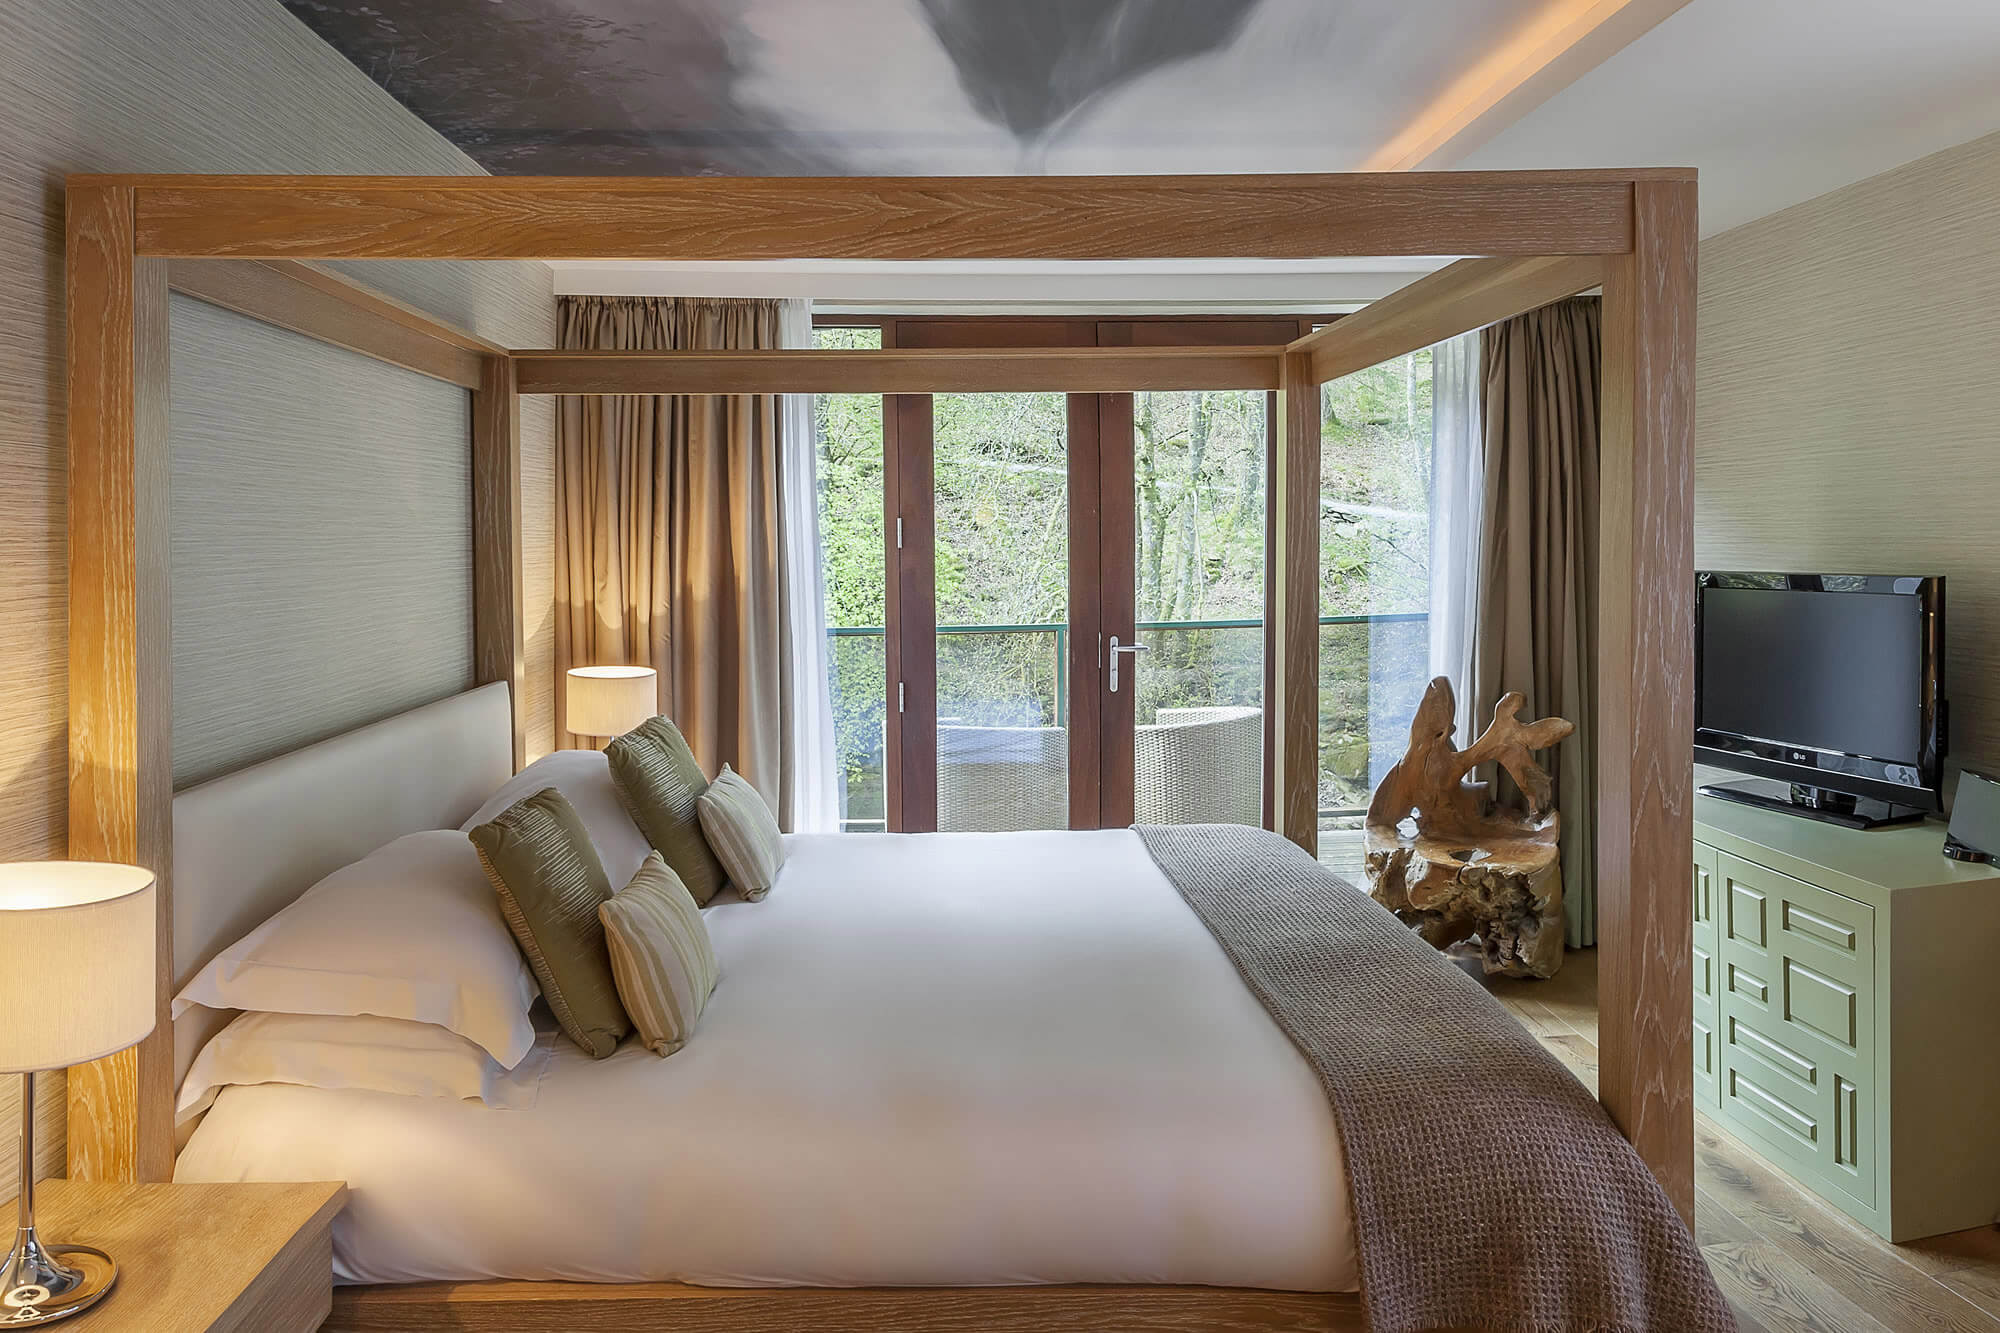 The Waterside Hotel Rooms at The Langdale Hotel & Spa